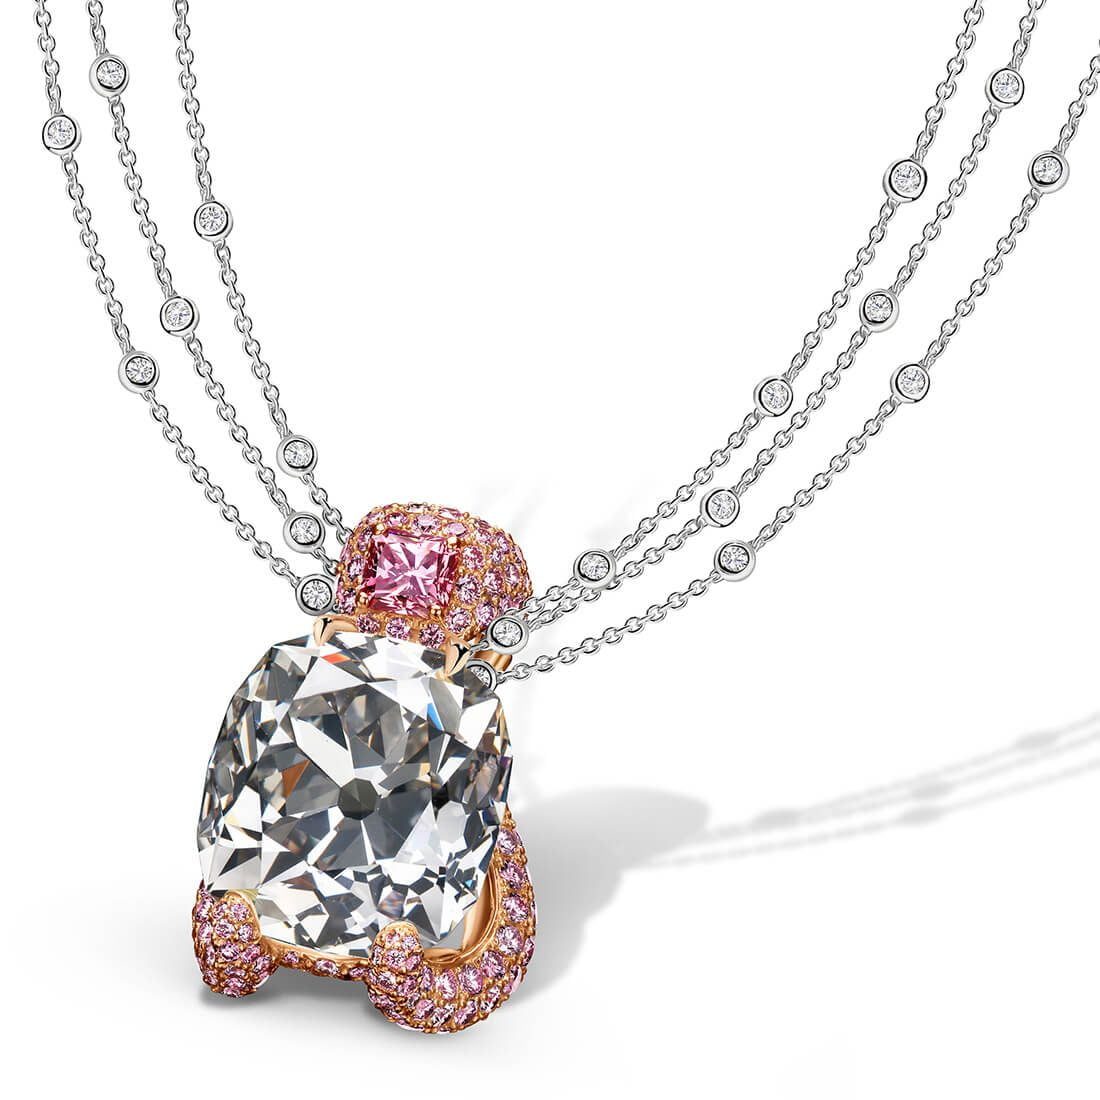 The Fortuna Necklace